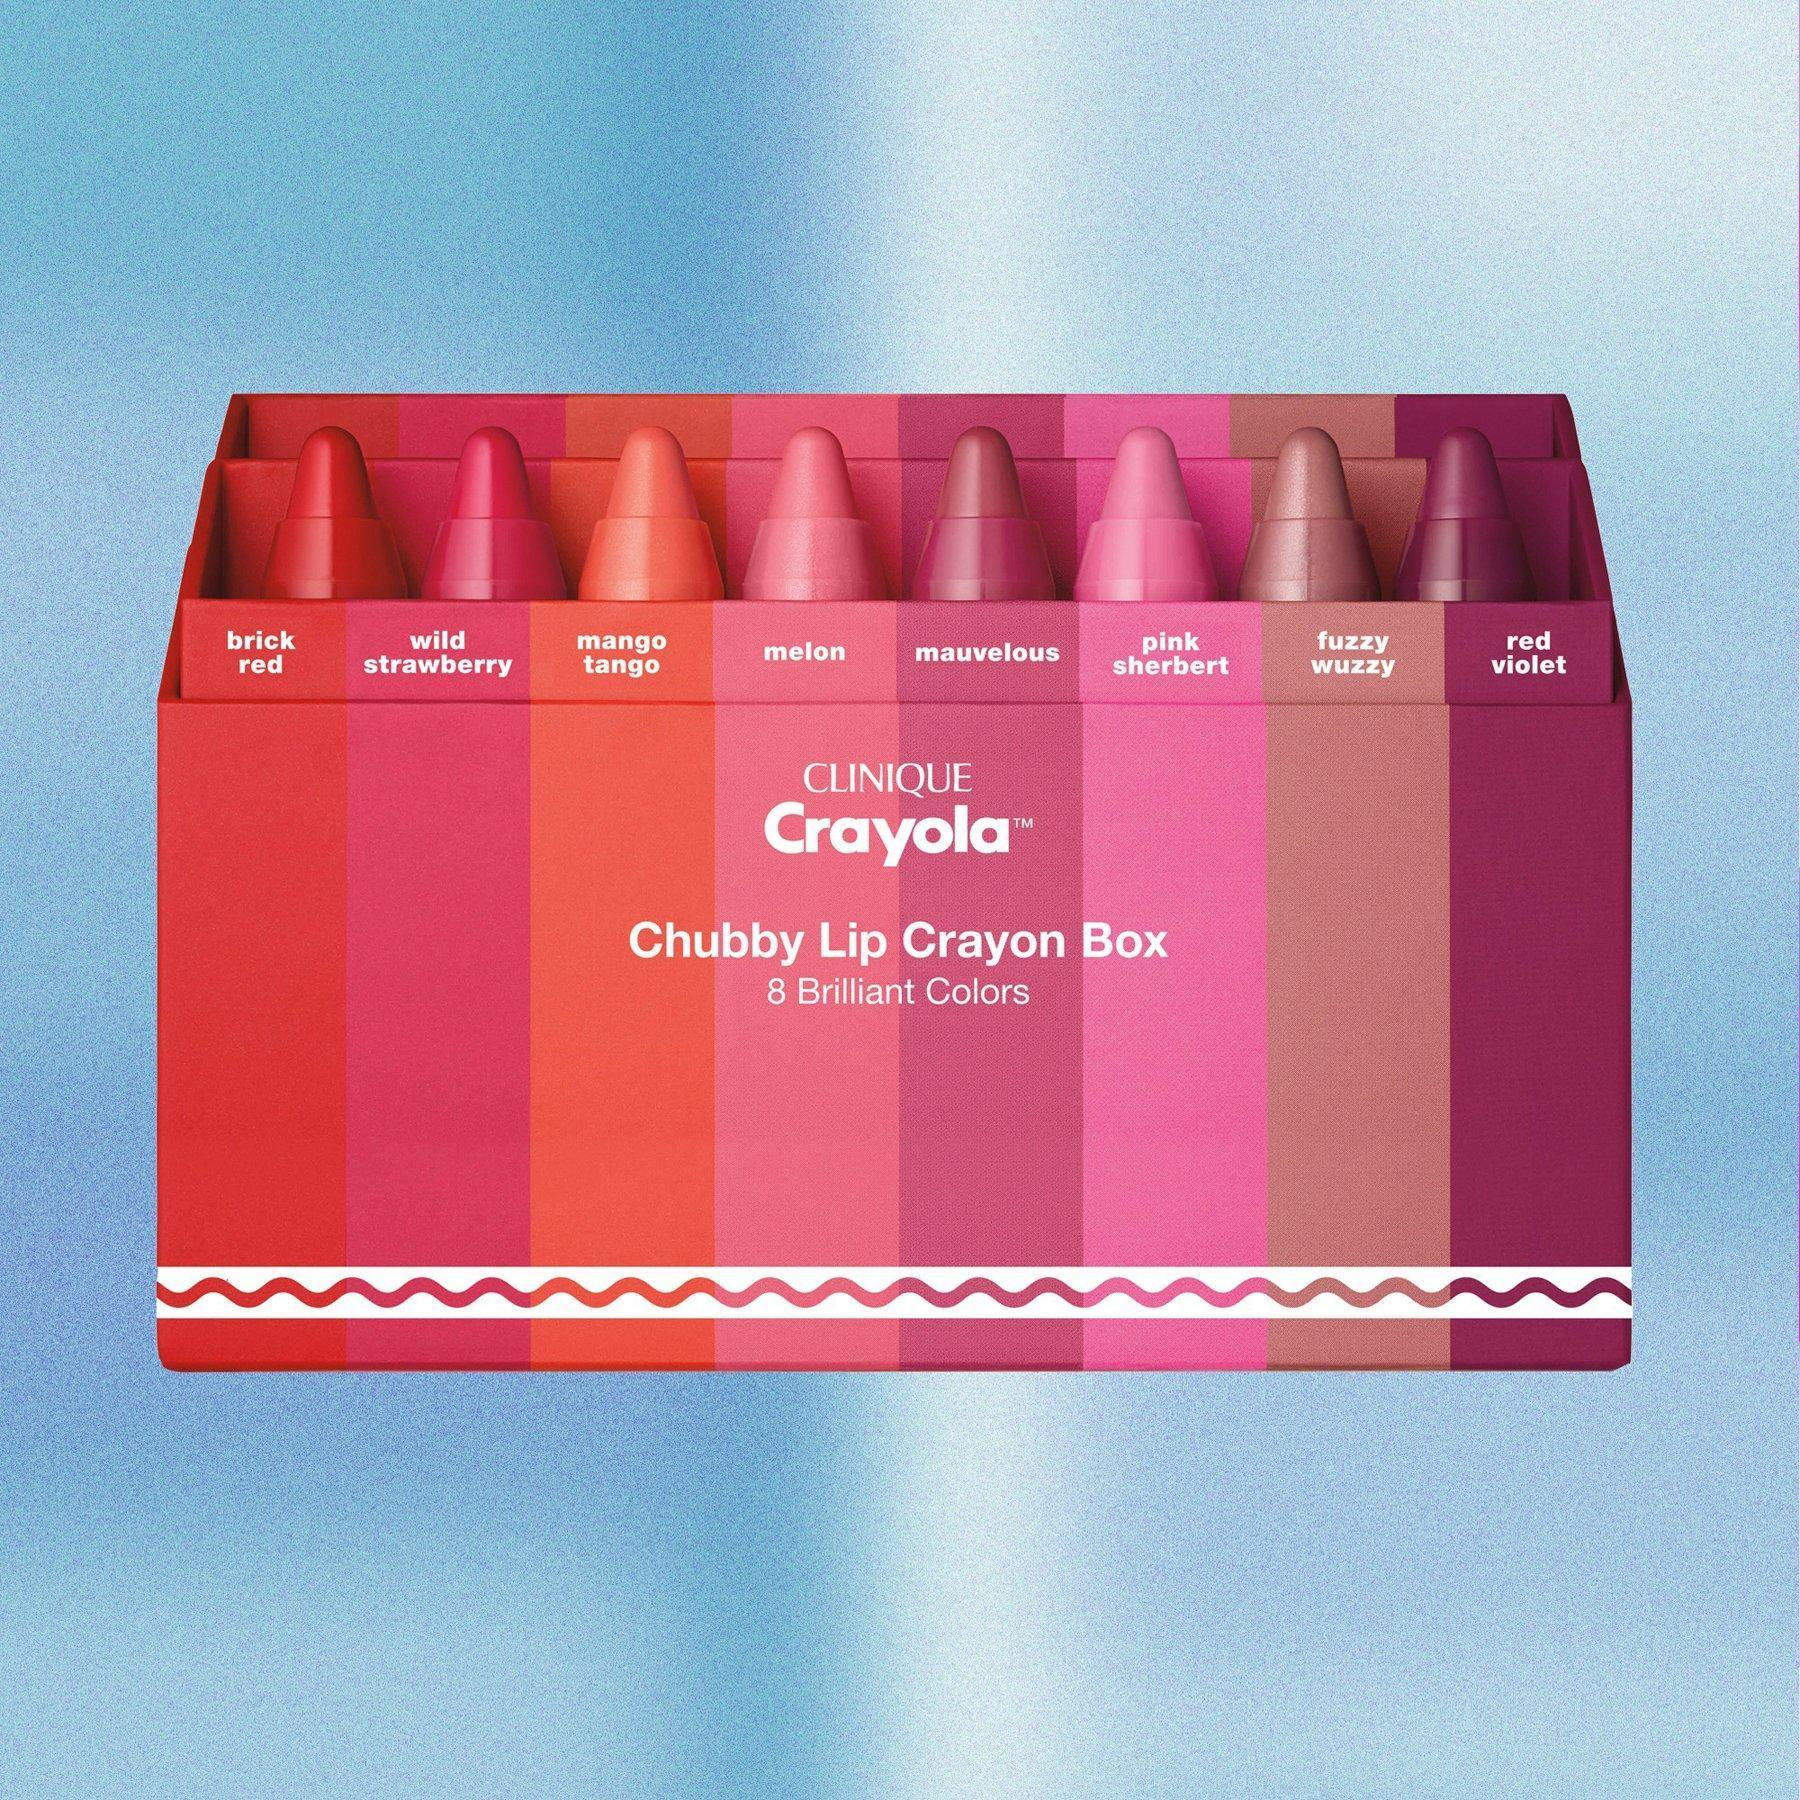 Crayola partners with Clinique to create colorful crayons for your lips